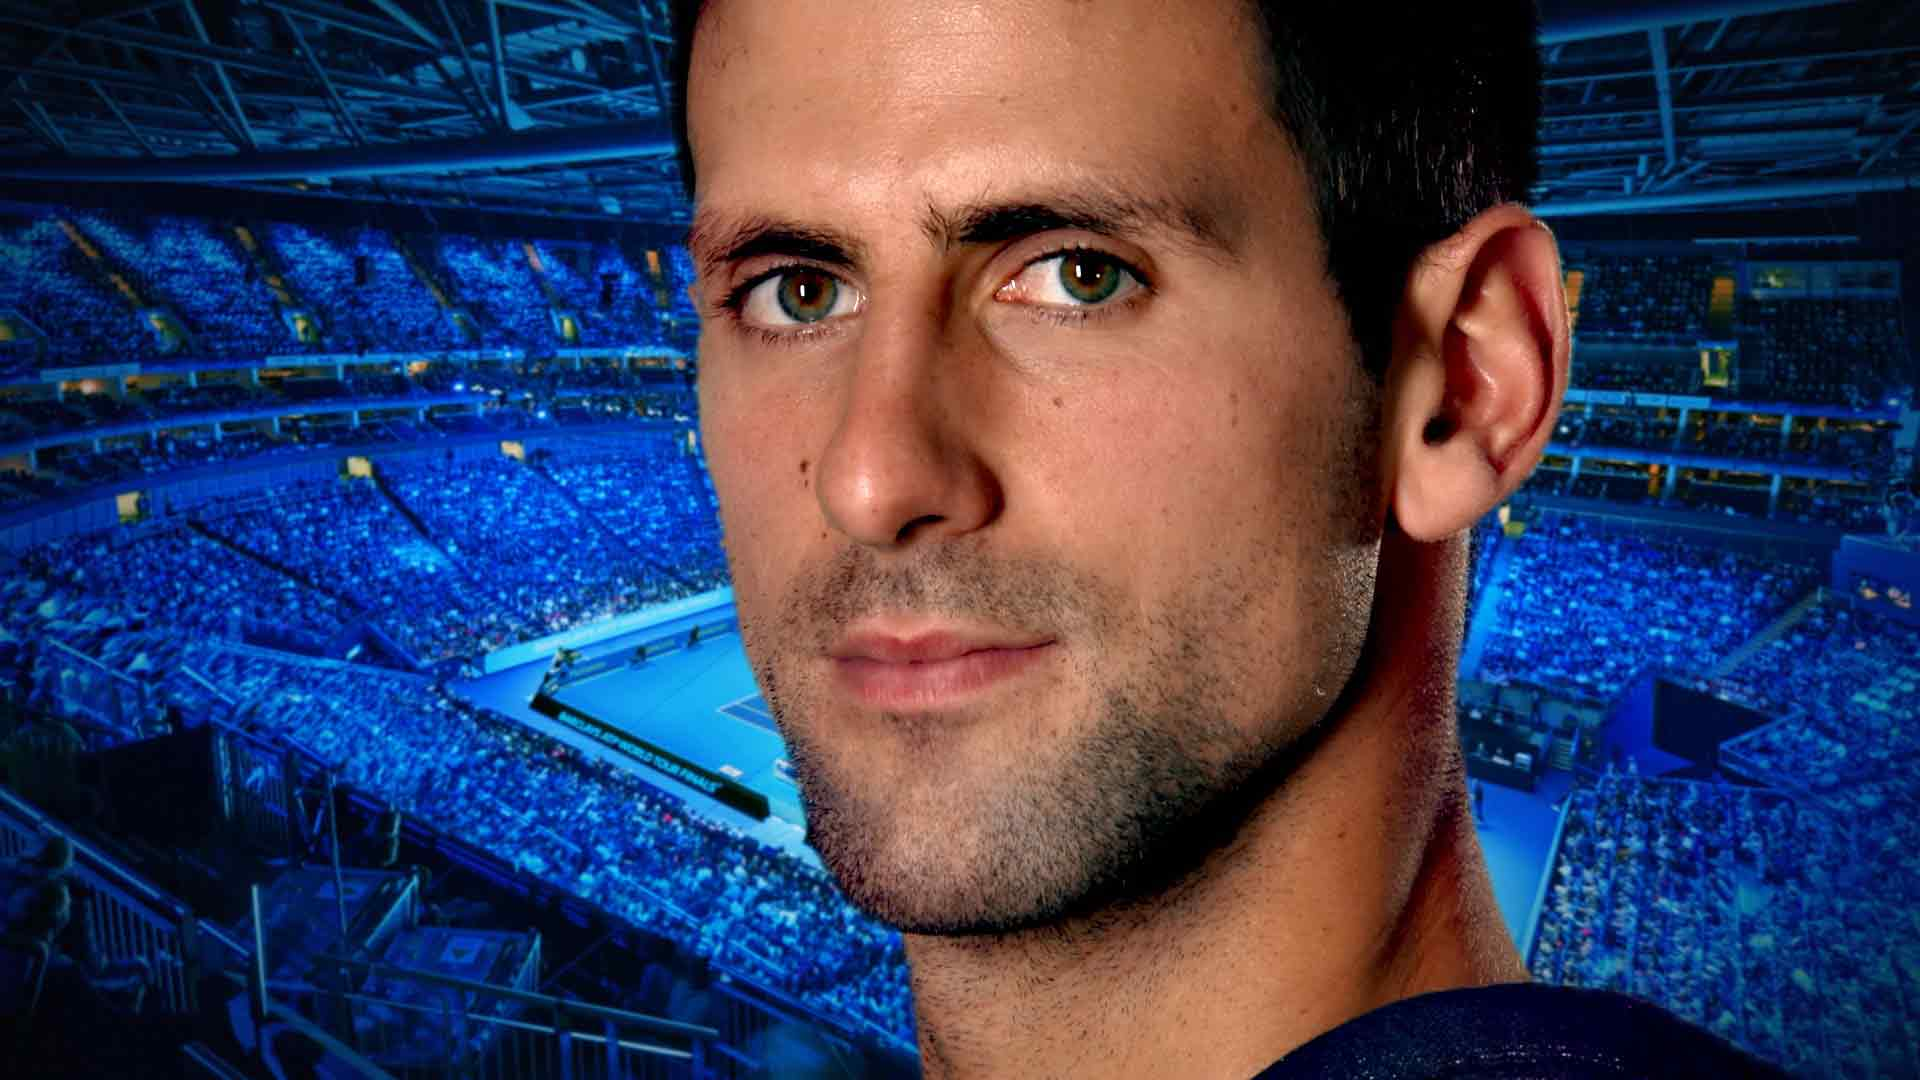 novak djokovic favorite to win 2015 atp world tour finals 2015 tennis images